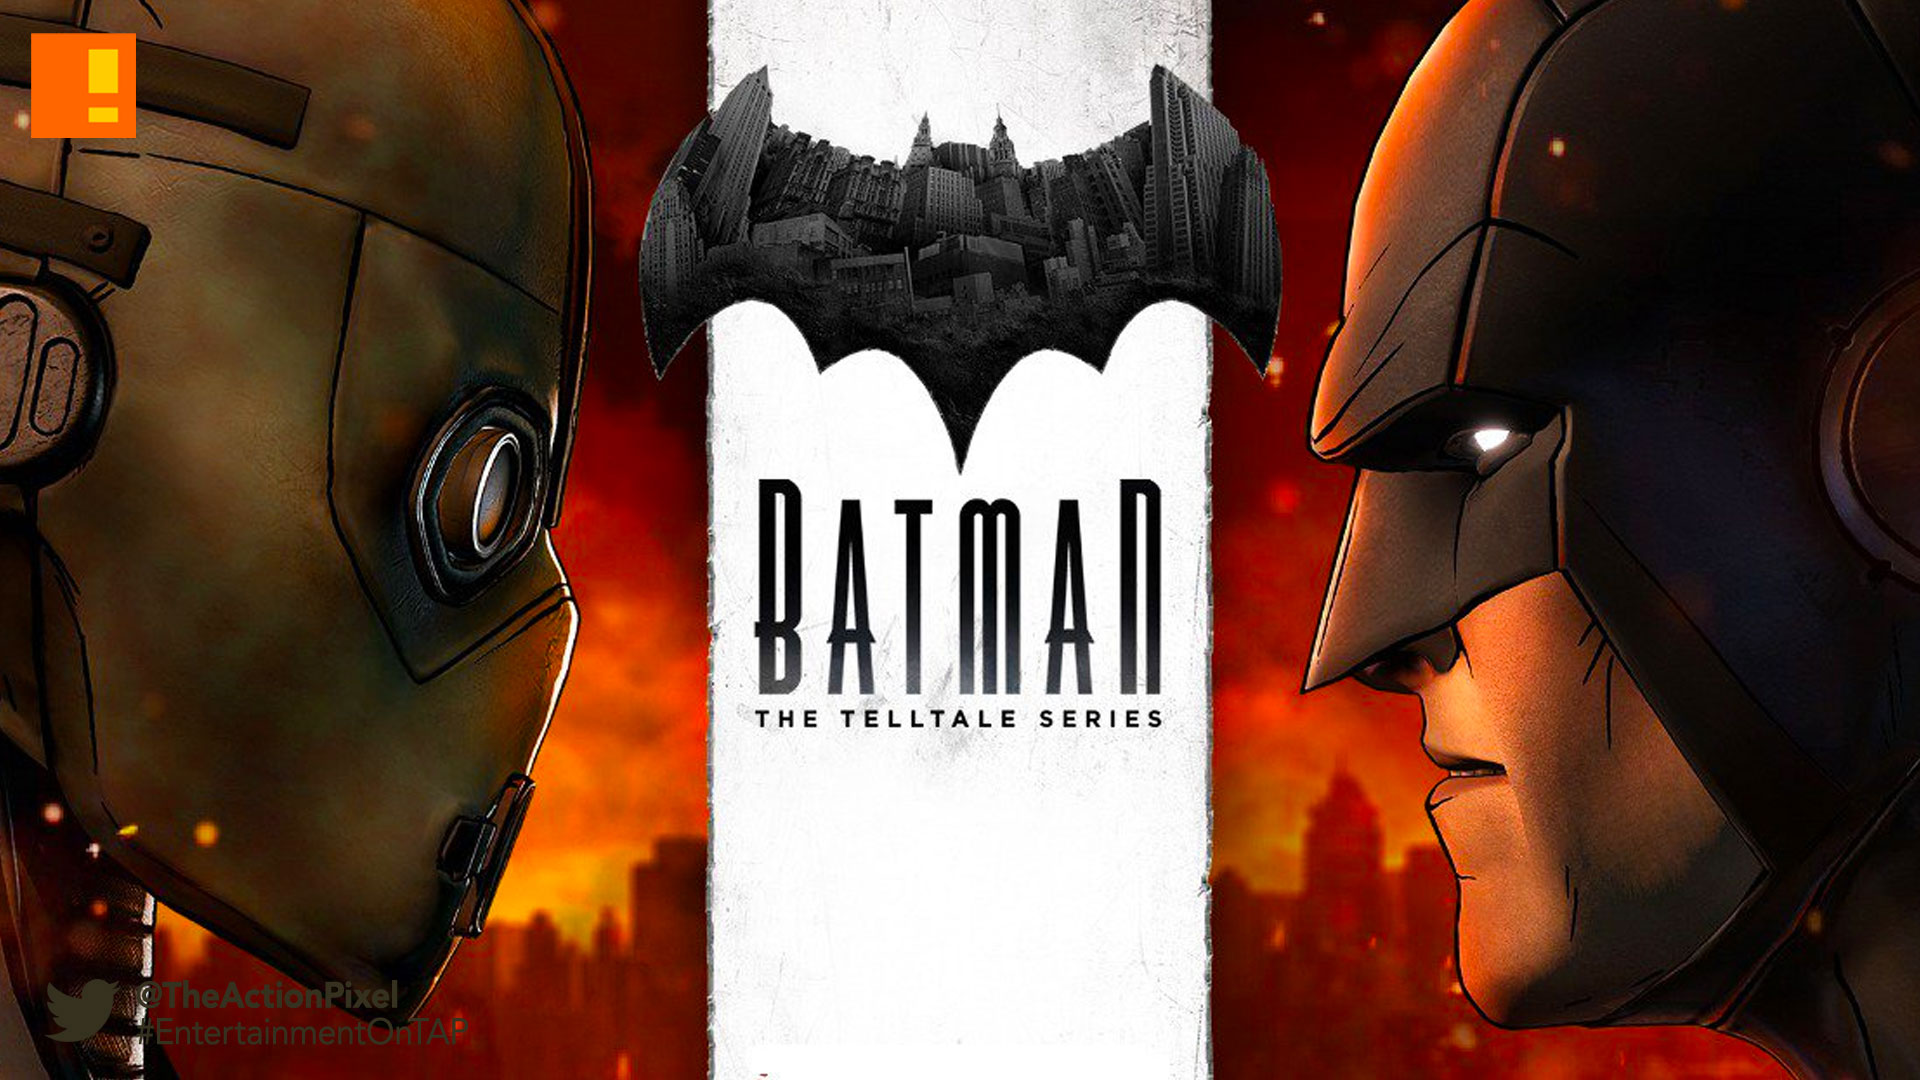 batman, dc comics, the telltale series, telltale games, the action pixel, city of light, entertainment on tap, gotham, free